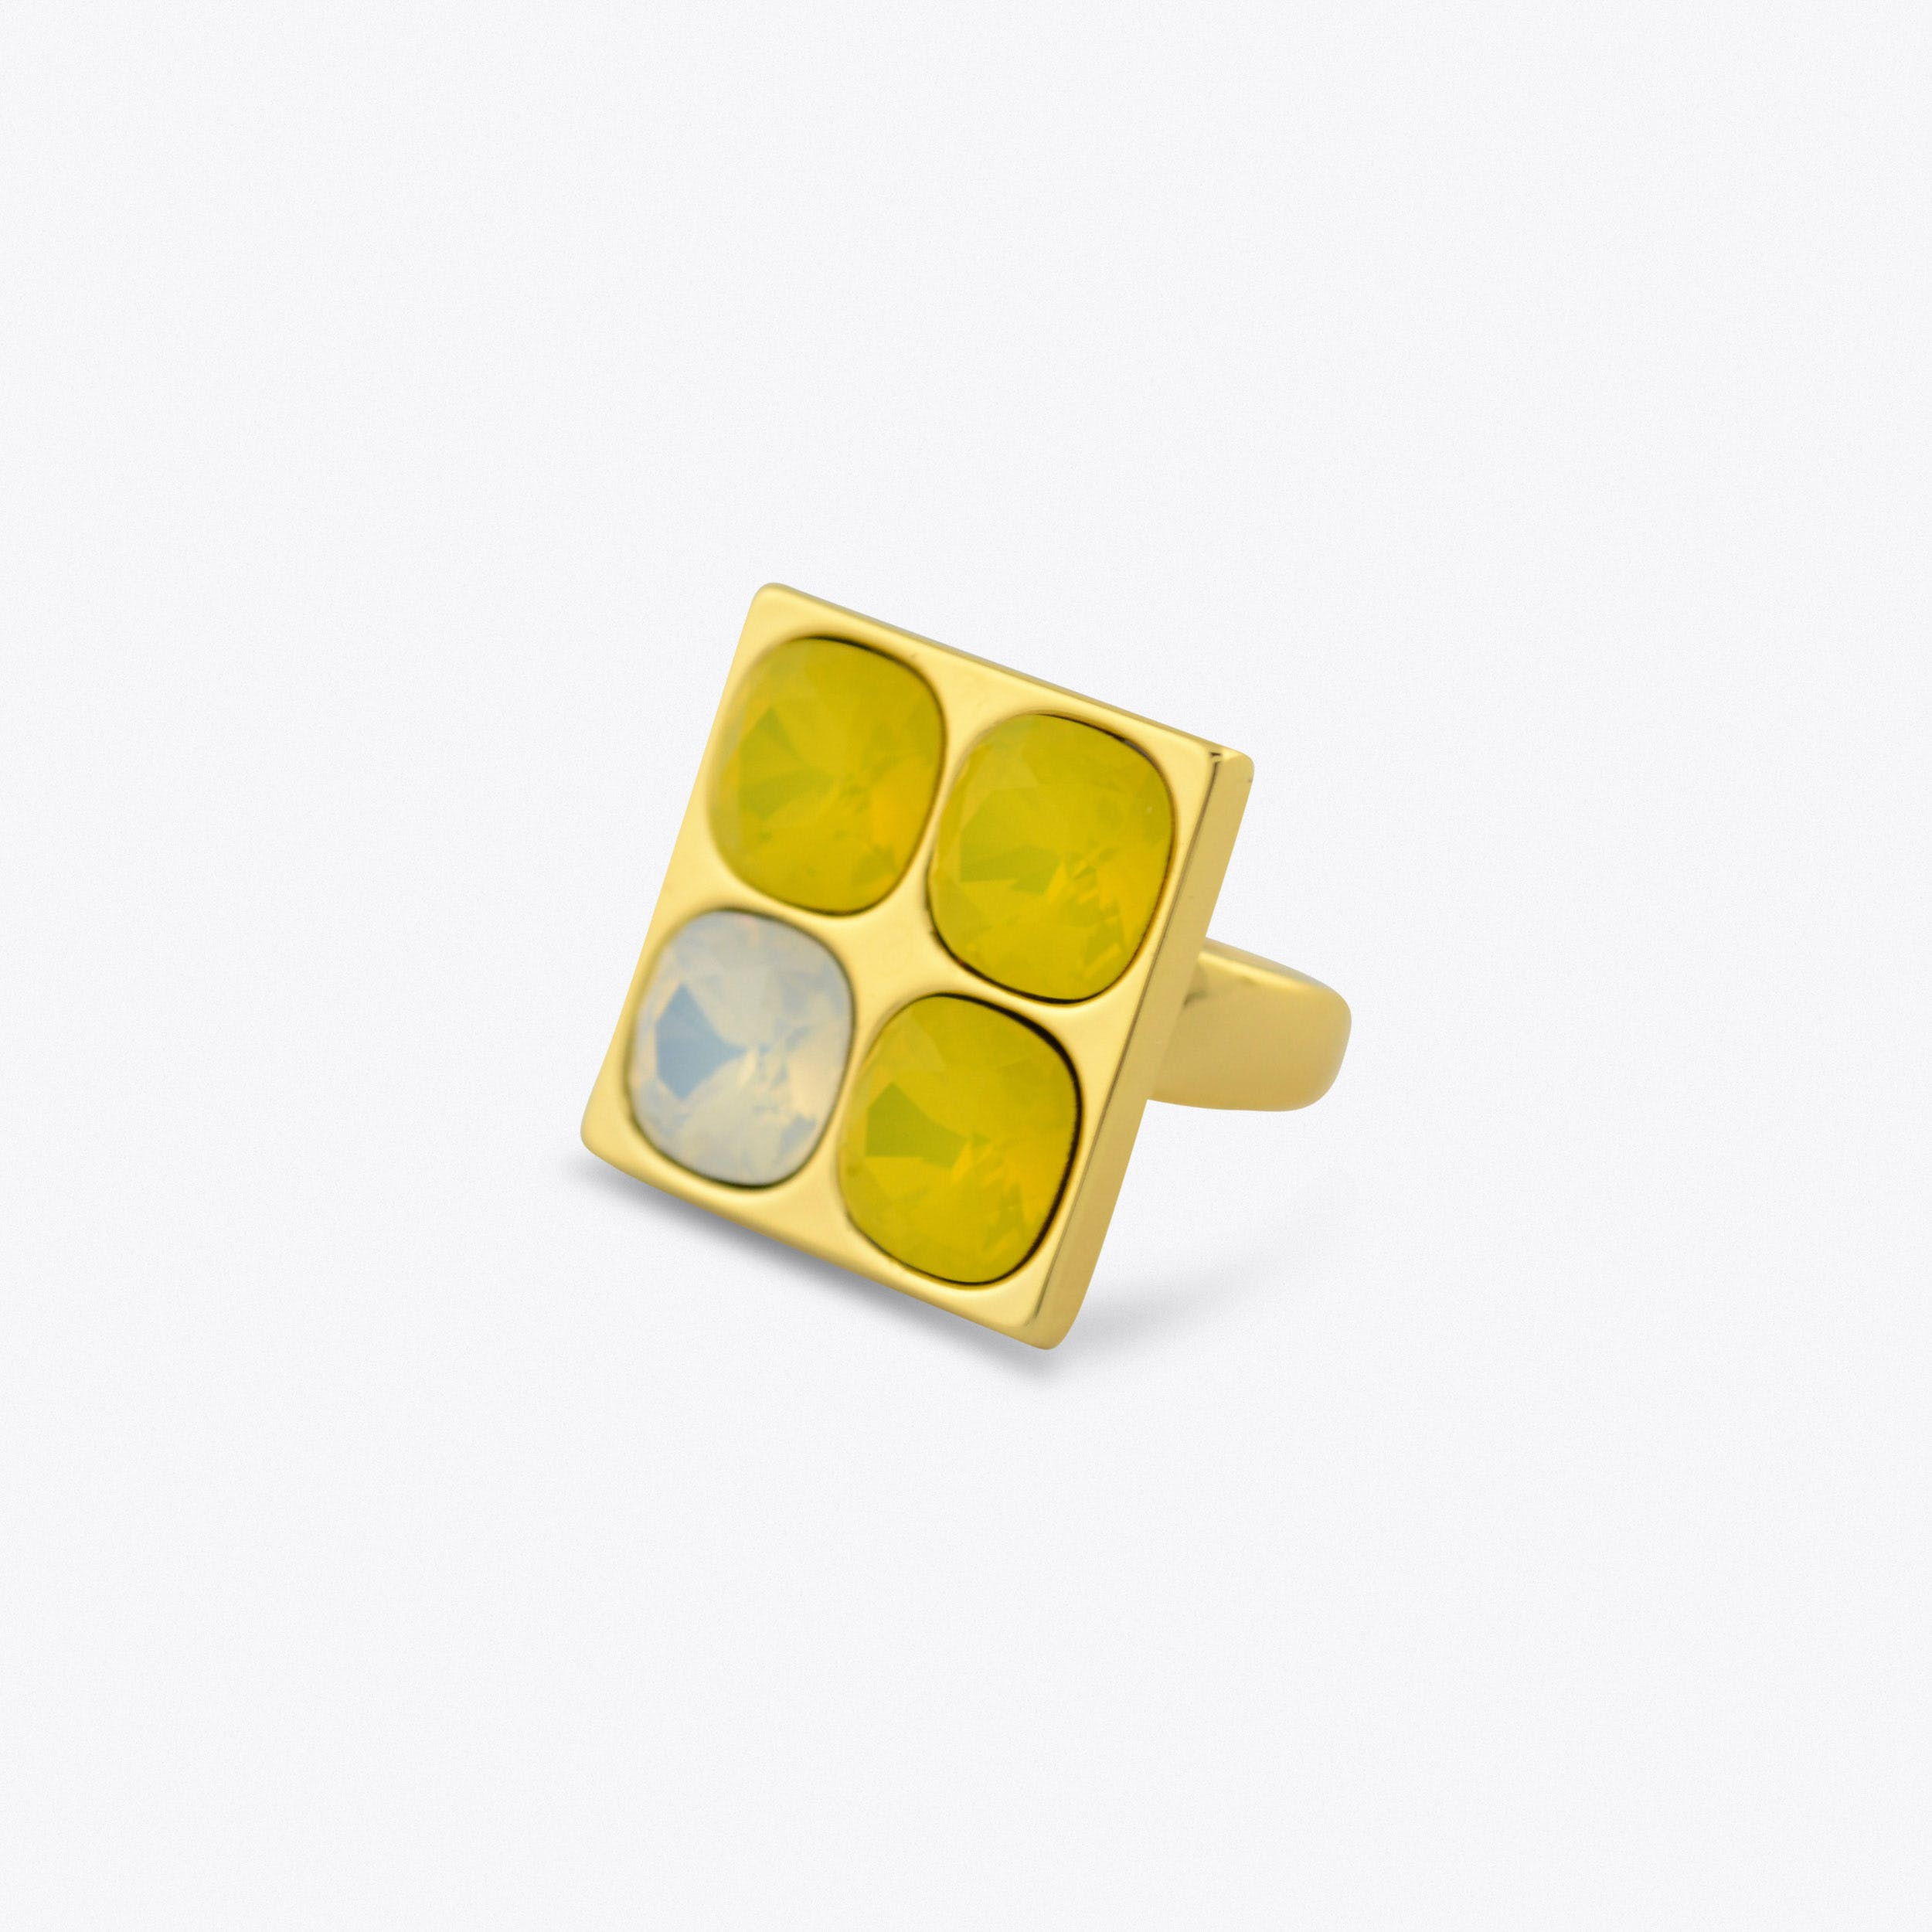 Four Stone Ring in Gold With White And Yellow Stones